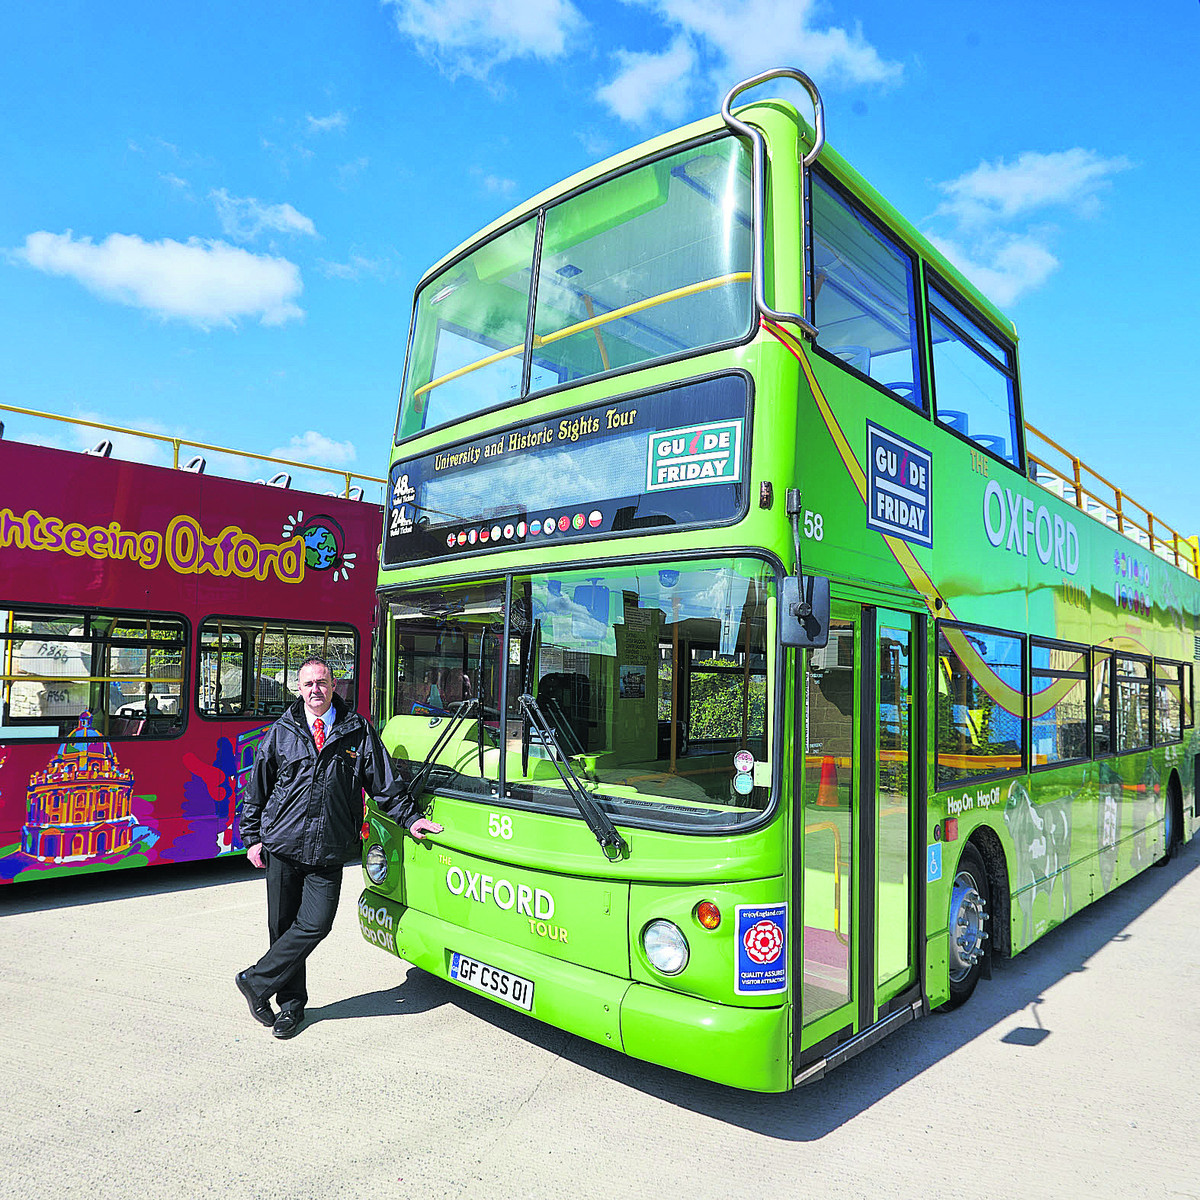 Sightseeing buses get green refit to help reduce pollution